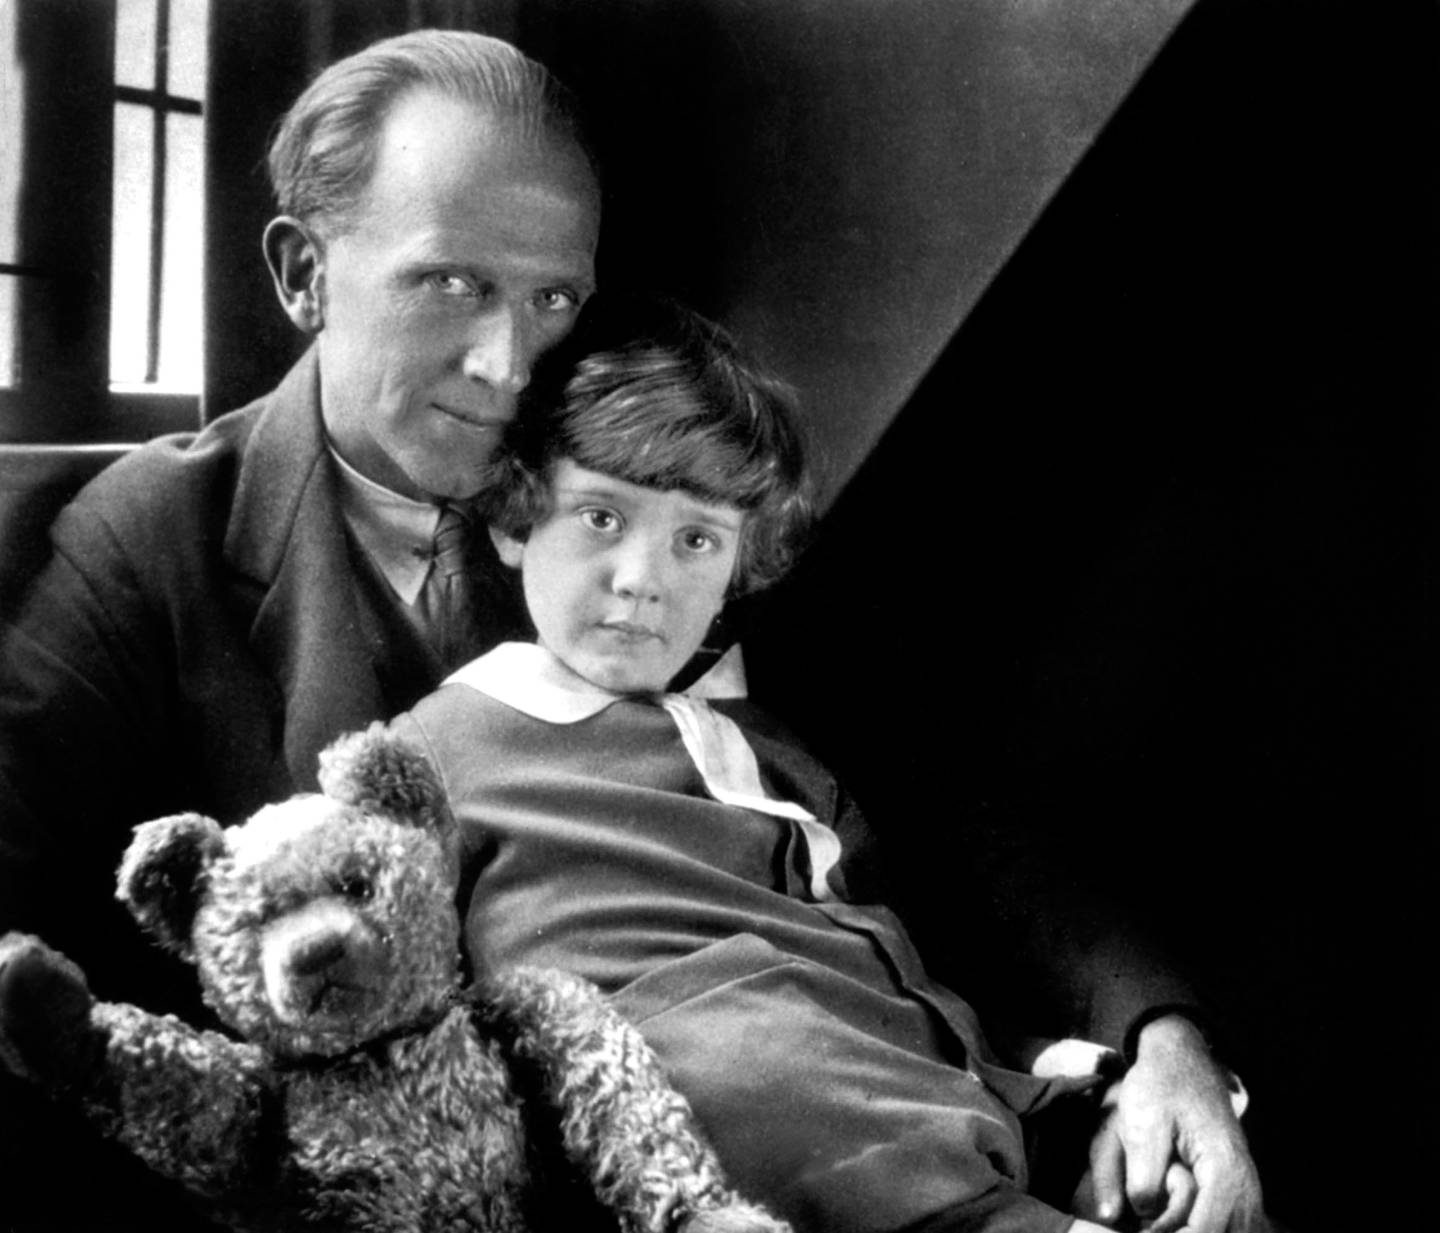 UNSPECIFIED - OCTOBER 09:  The English novelist Alan Alexander Milne (1882-1956) author of the story Winnie the Pooh, here with his son Christopher Robin Milner (1920-1996), photo by Howard Coster, 1926 - English novelist Alan Alexander Milne who wrote the story of Winnie the Pooh (1926) here with his son Christopher Robin Milner, picture by Howard Coster, 1926 - father and child father and child  (Photo by Apic/Getty Images)